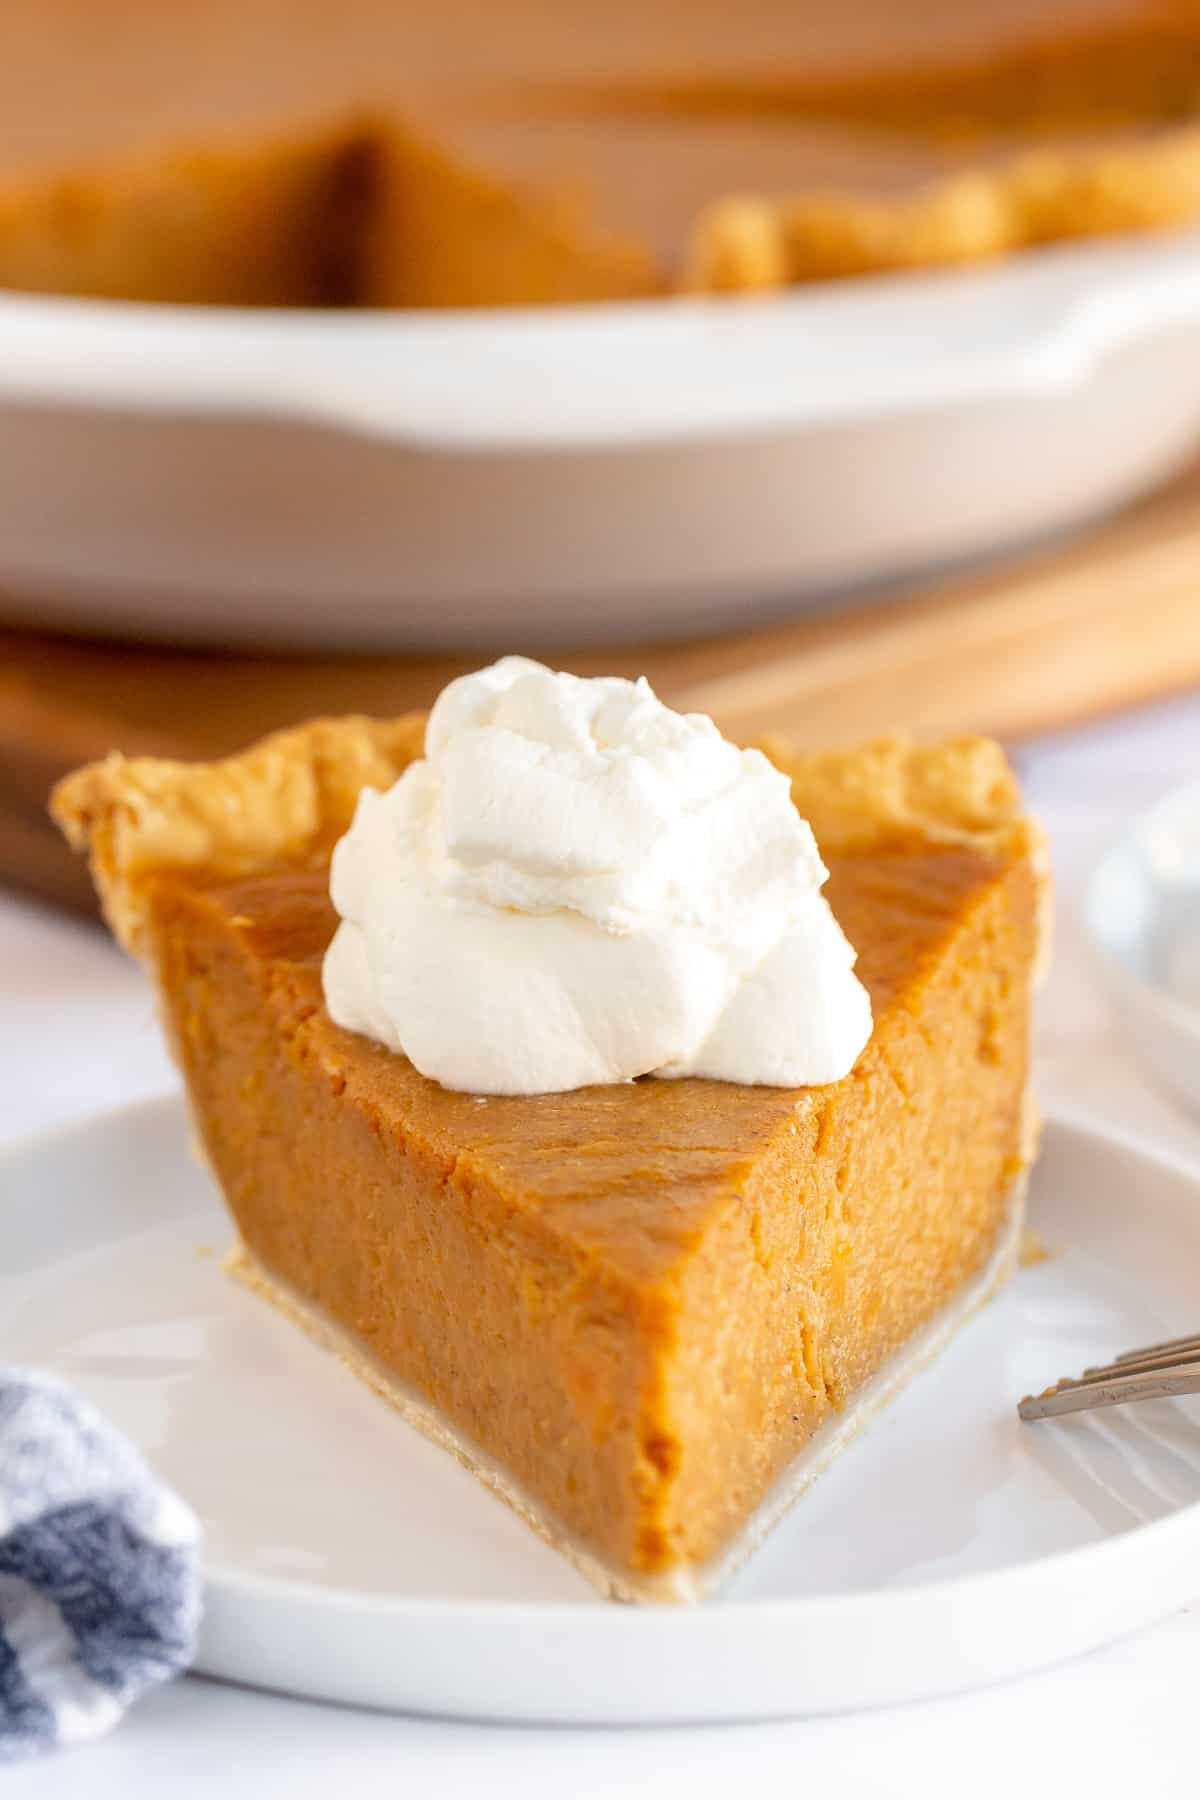 A slice of sweet potato pie toped with whipped cream.